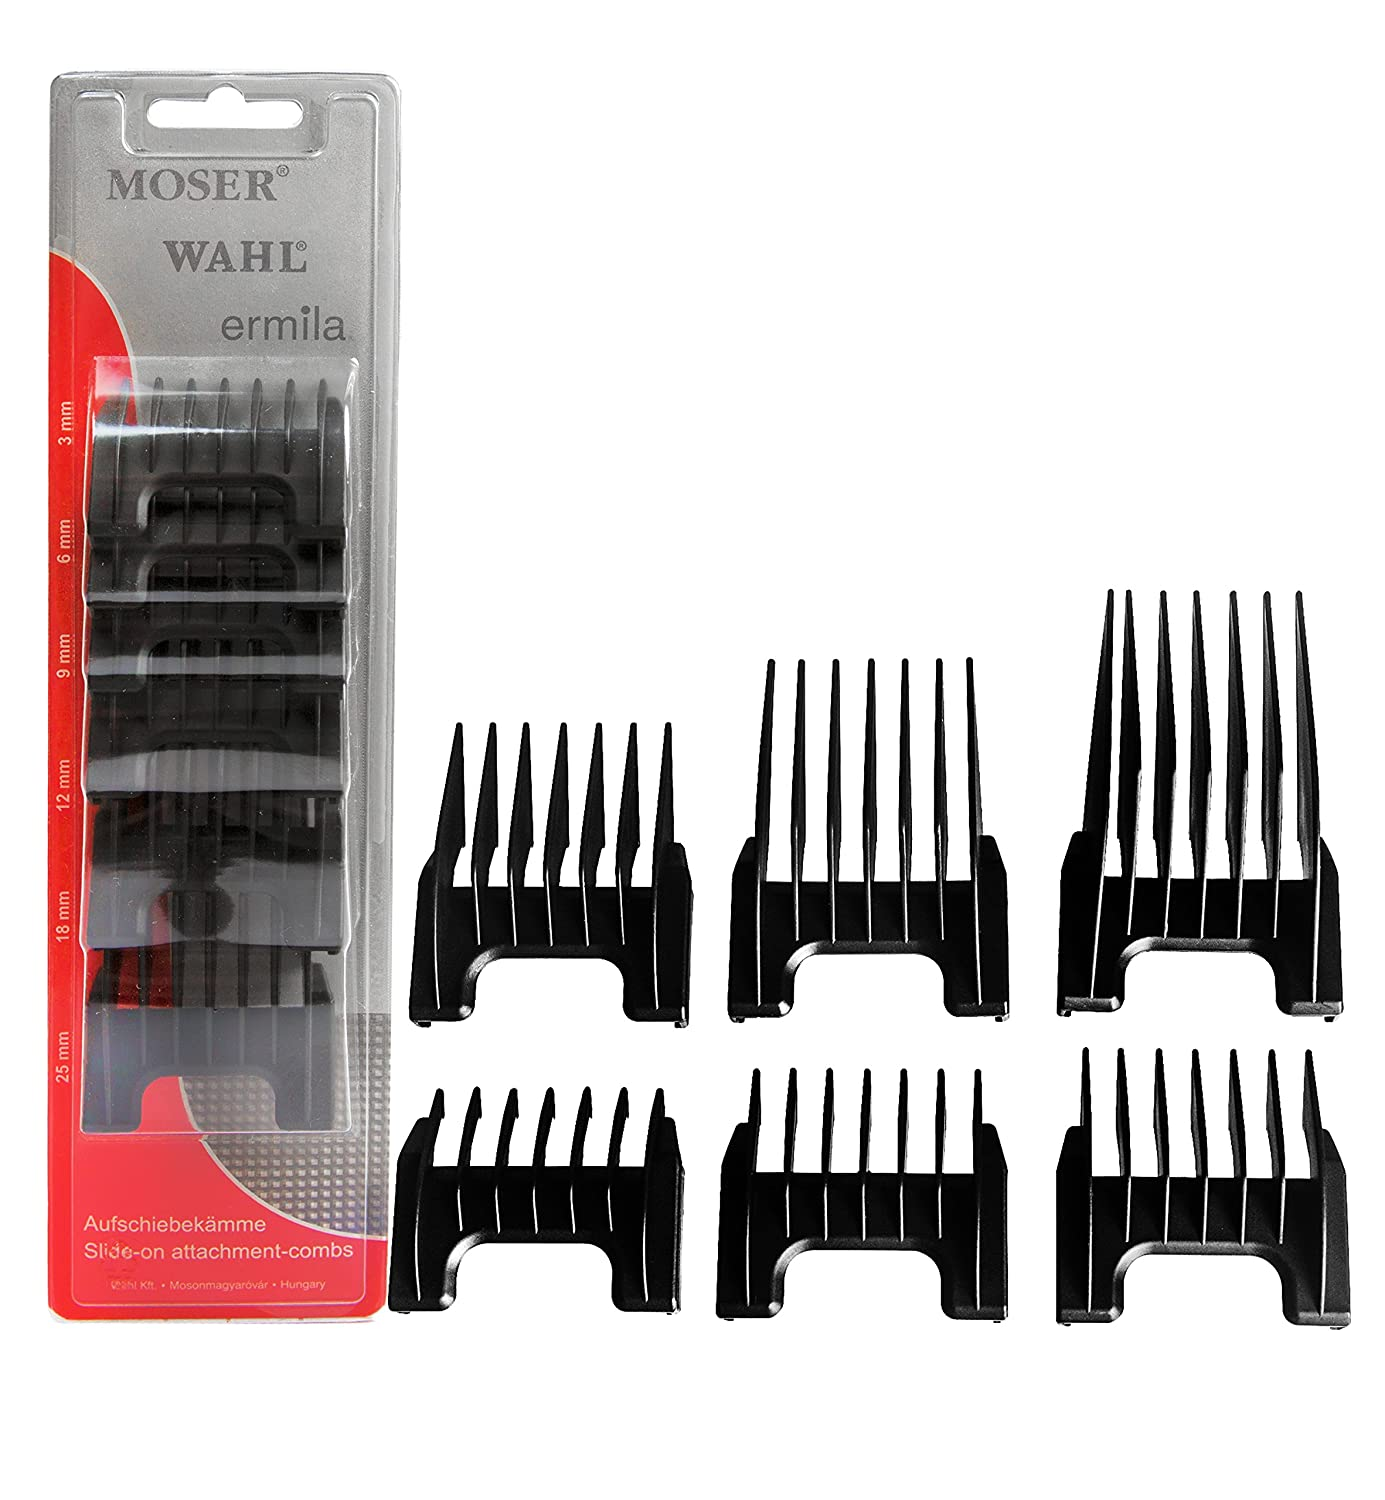 Wahl Professional Detachable Clipper Cutting Guide Set #41881-7430 – Fits Wahl Professional Chromstyle Pro Clipper, Sterling Big Mag, and Sterling Li+Pro – Set of 6 KM1881-7170